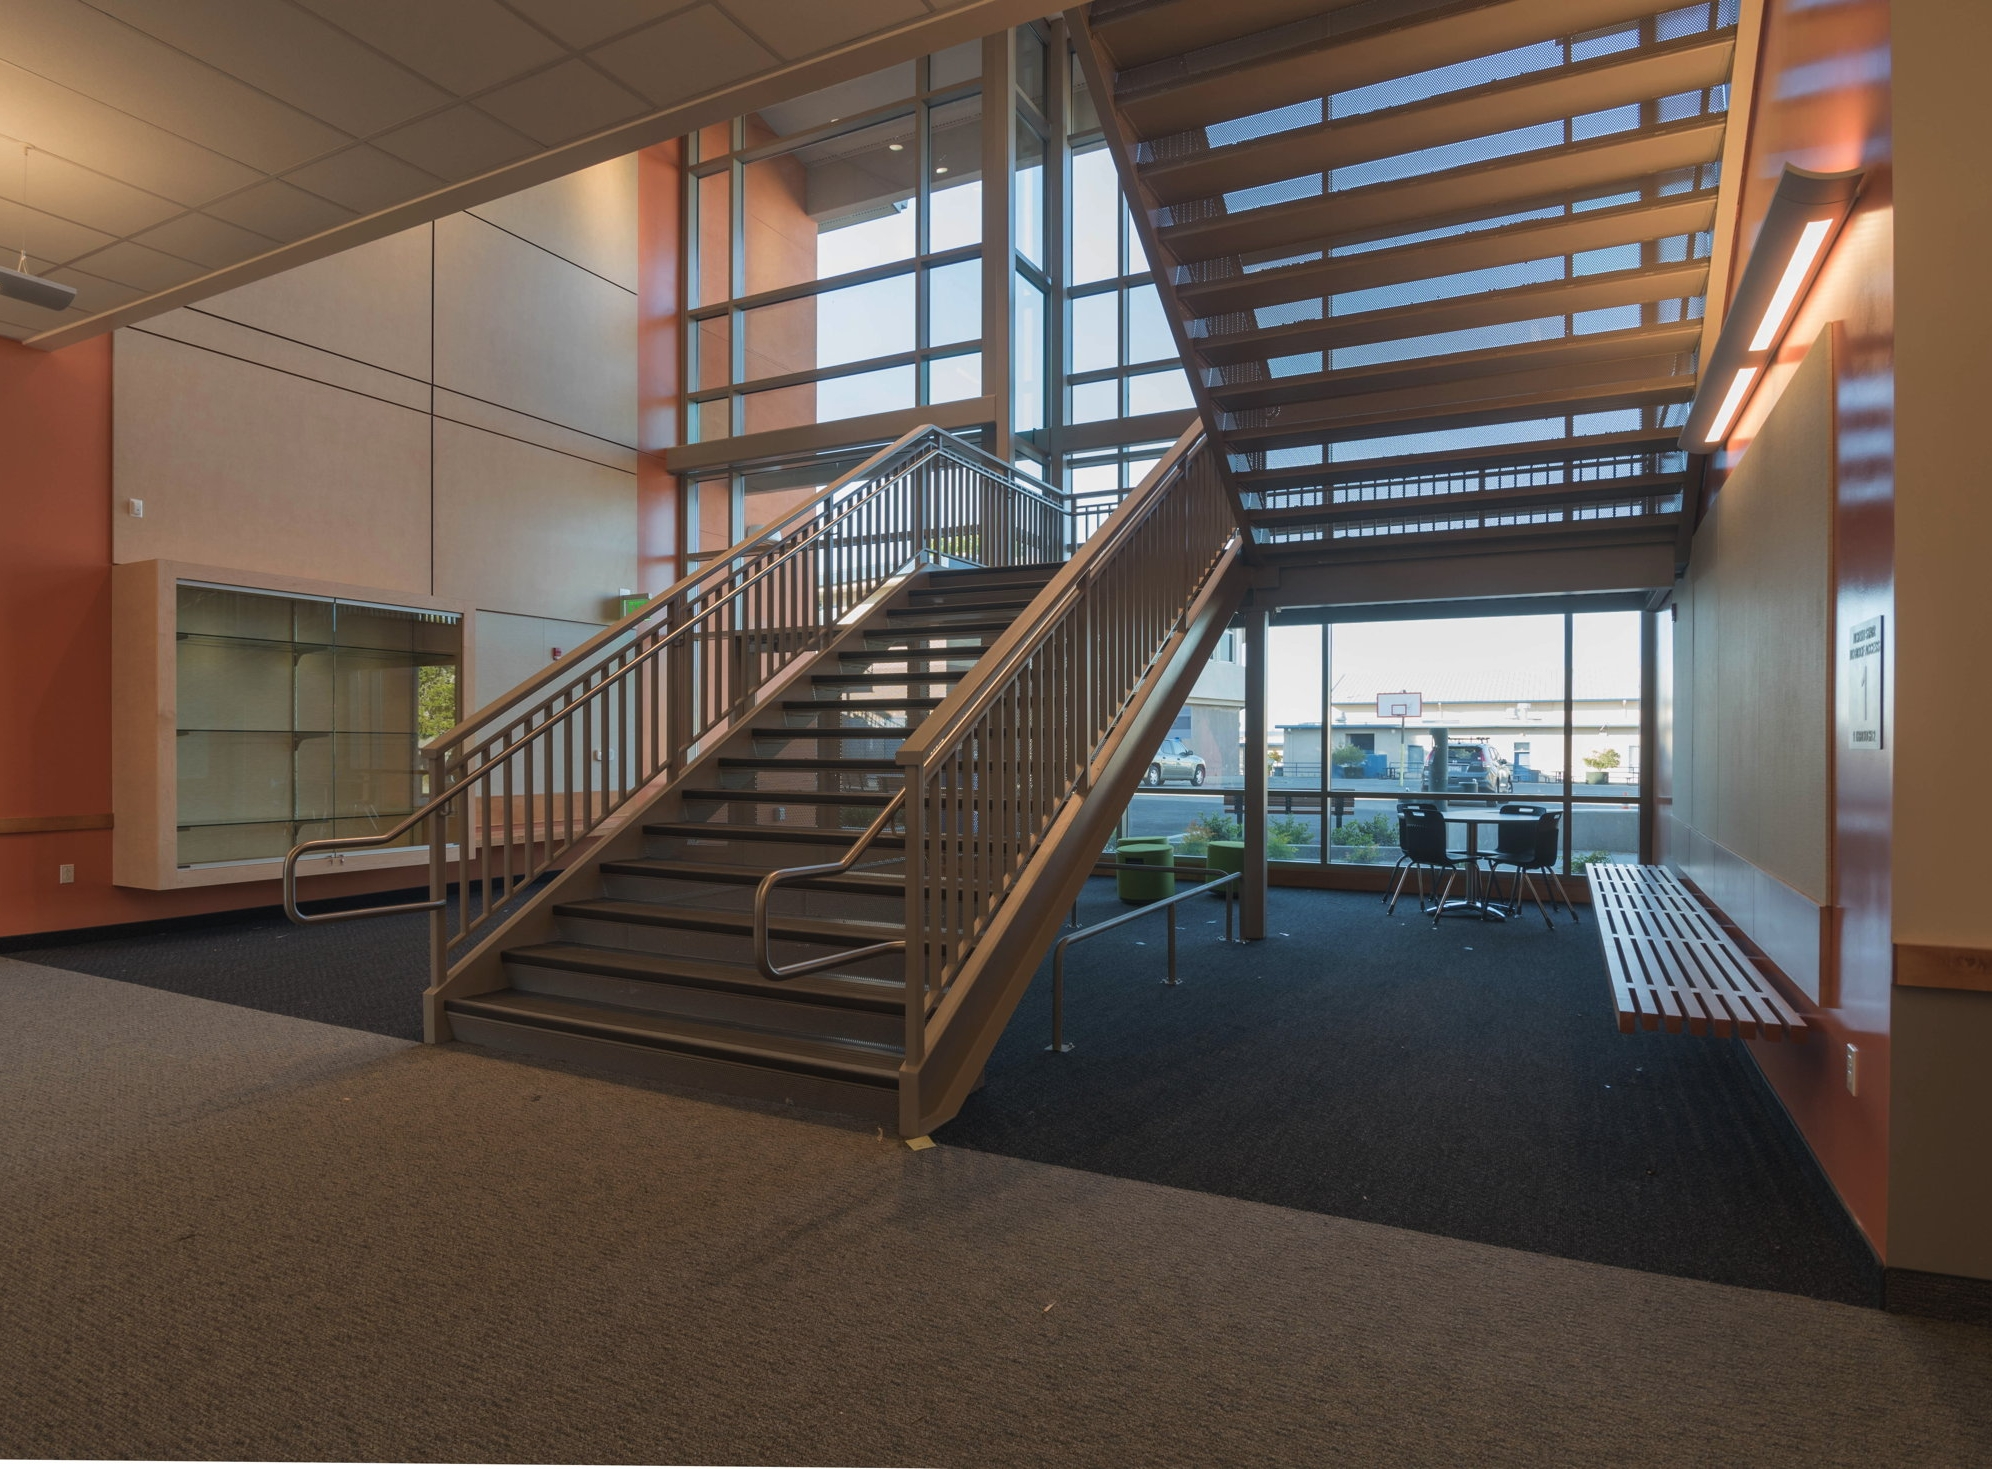 Spaces around the entry lobby and stair are designed as small group learning areas at Burlingame Intermediate School.